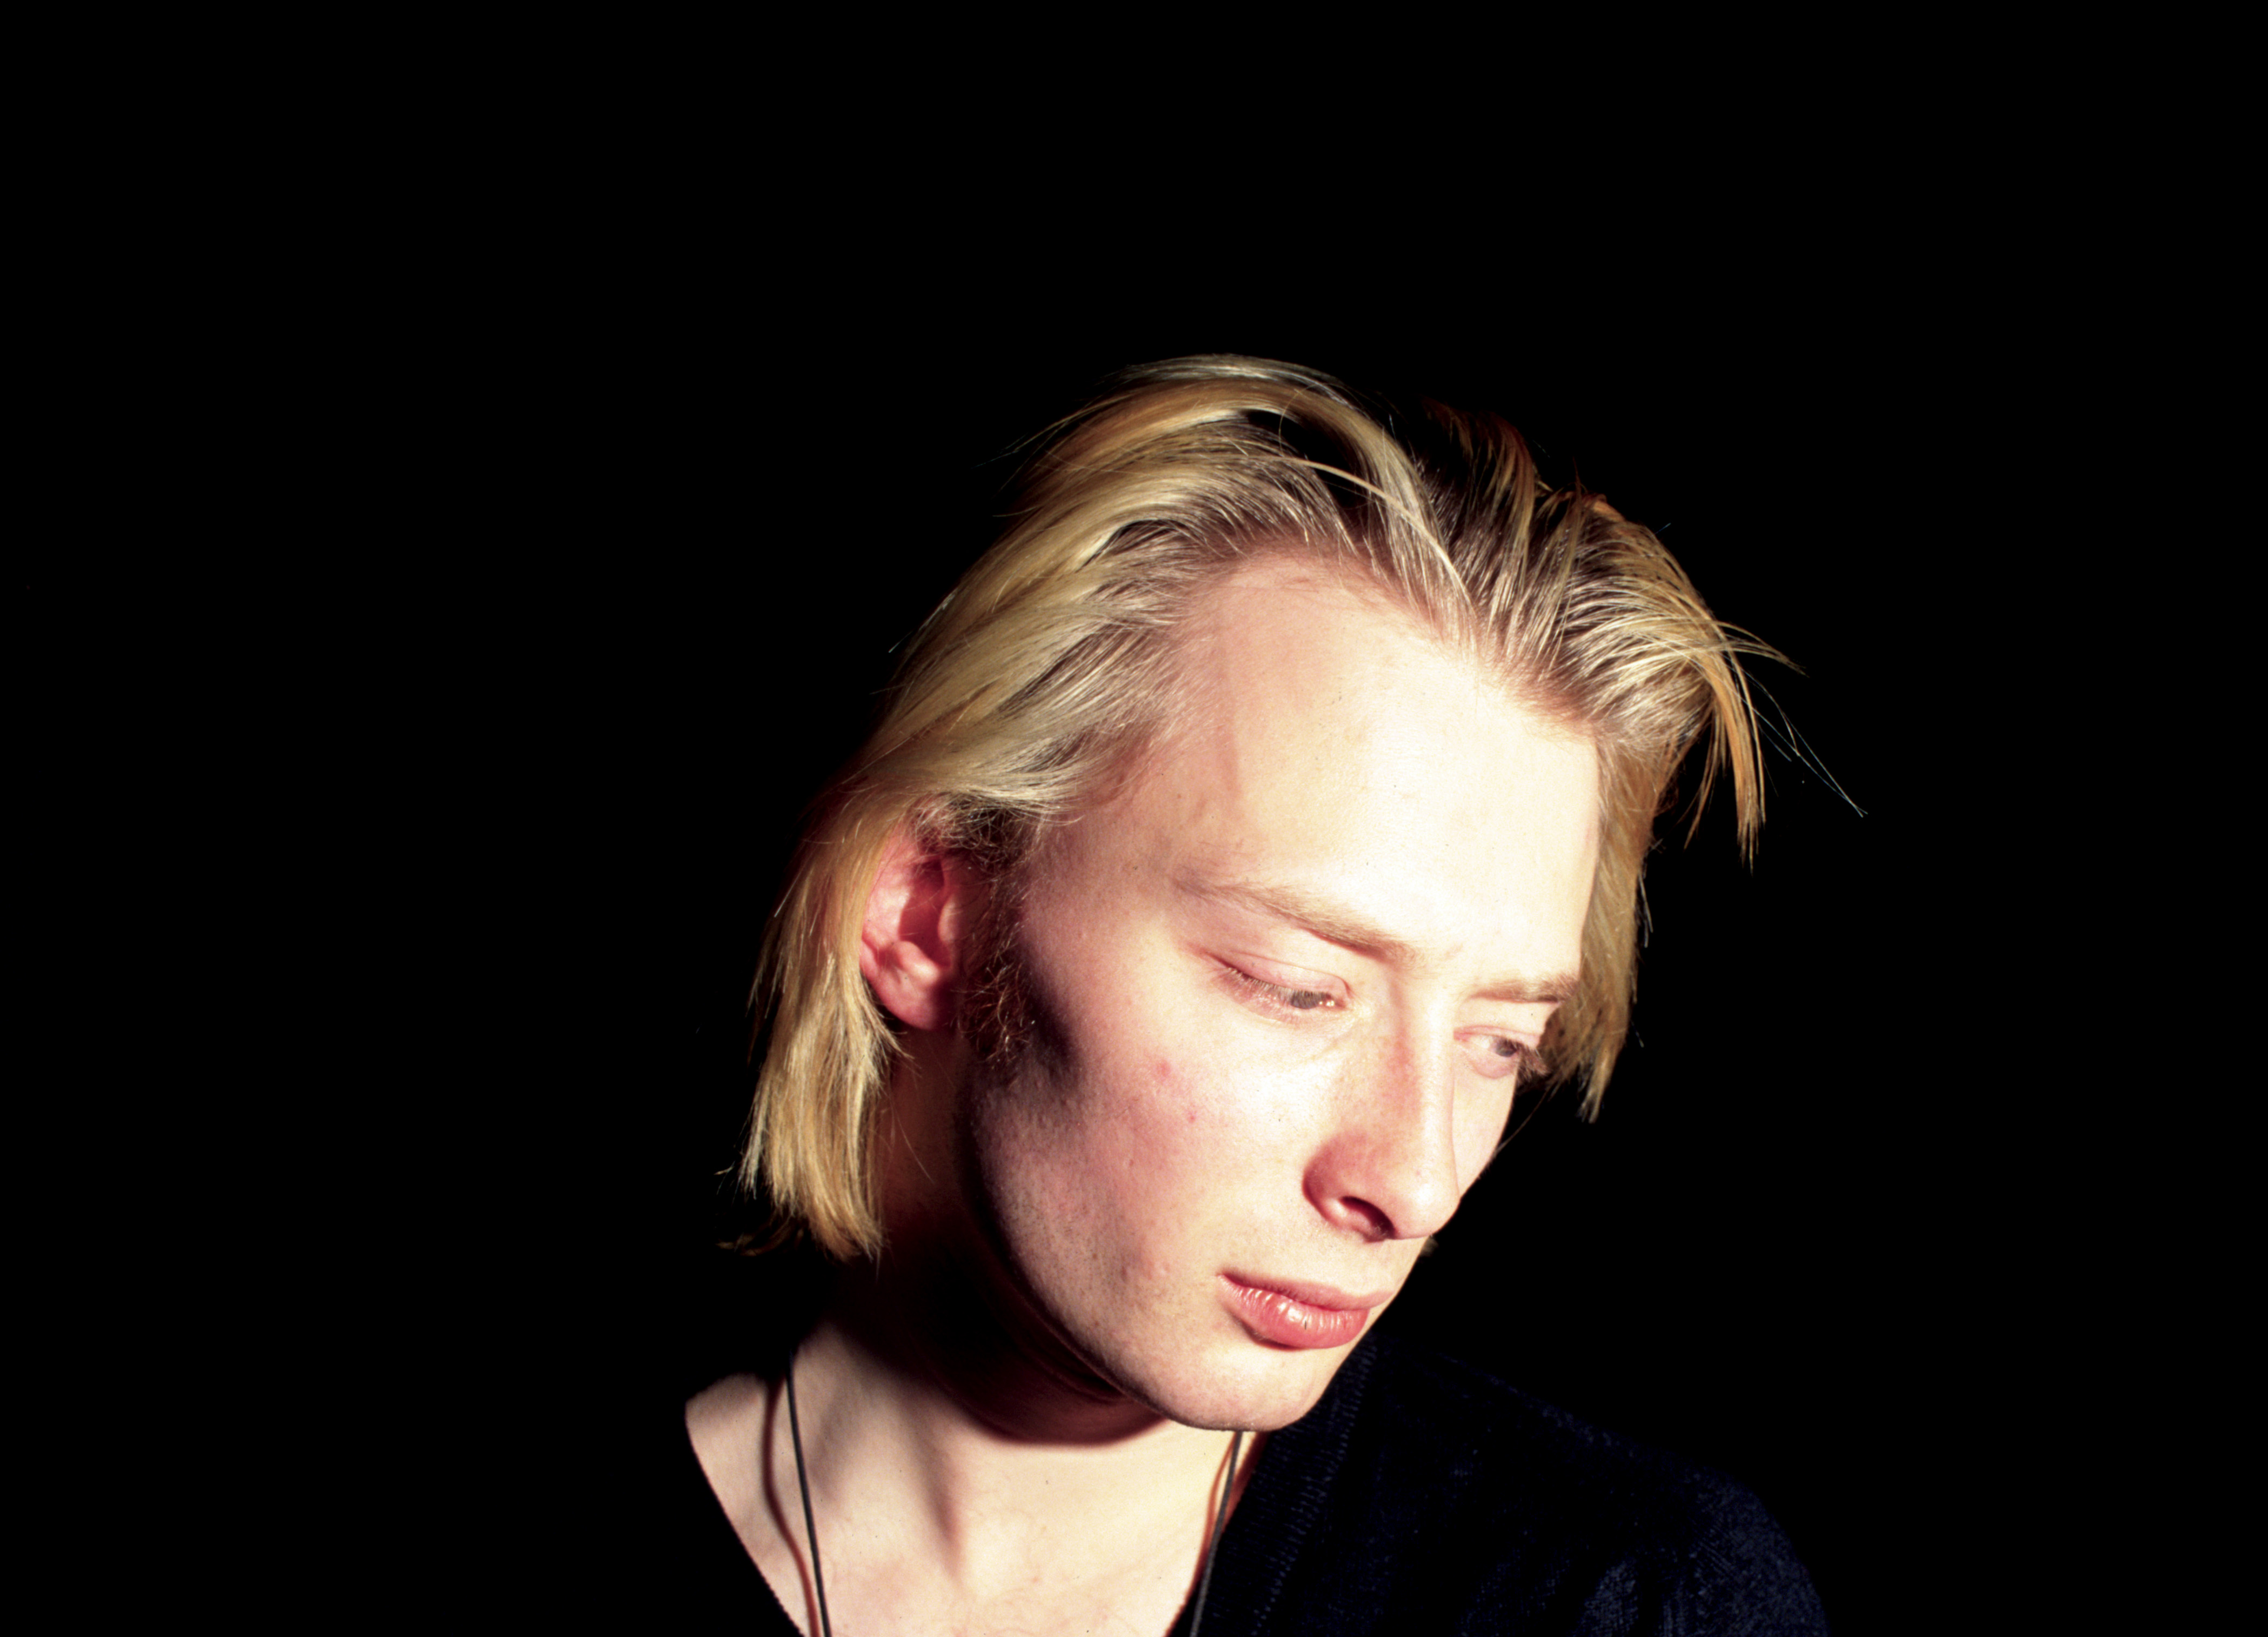 Portrait of Thom Yorke from Radiohead photographed in the early 1990's. (Photo by Alastair Indge/Photoshot/Getty Images) ***